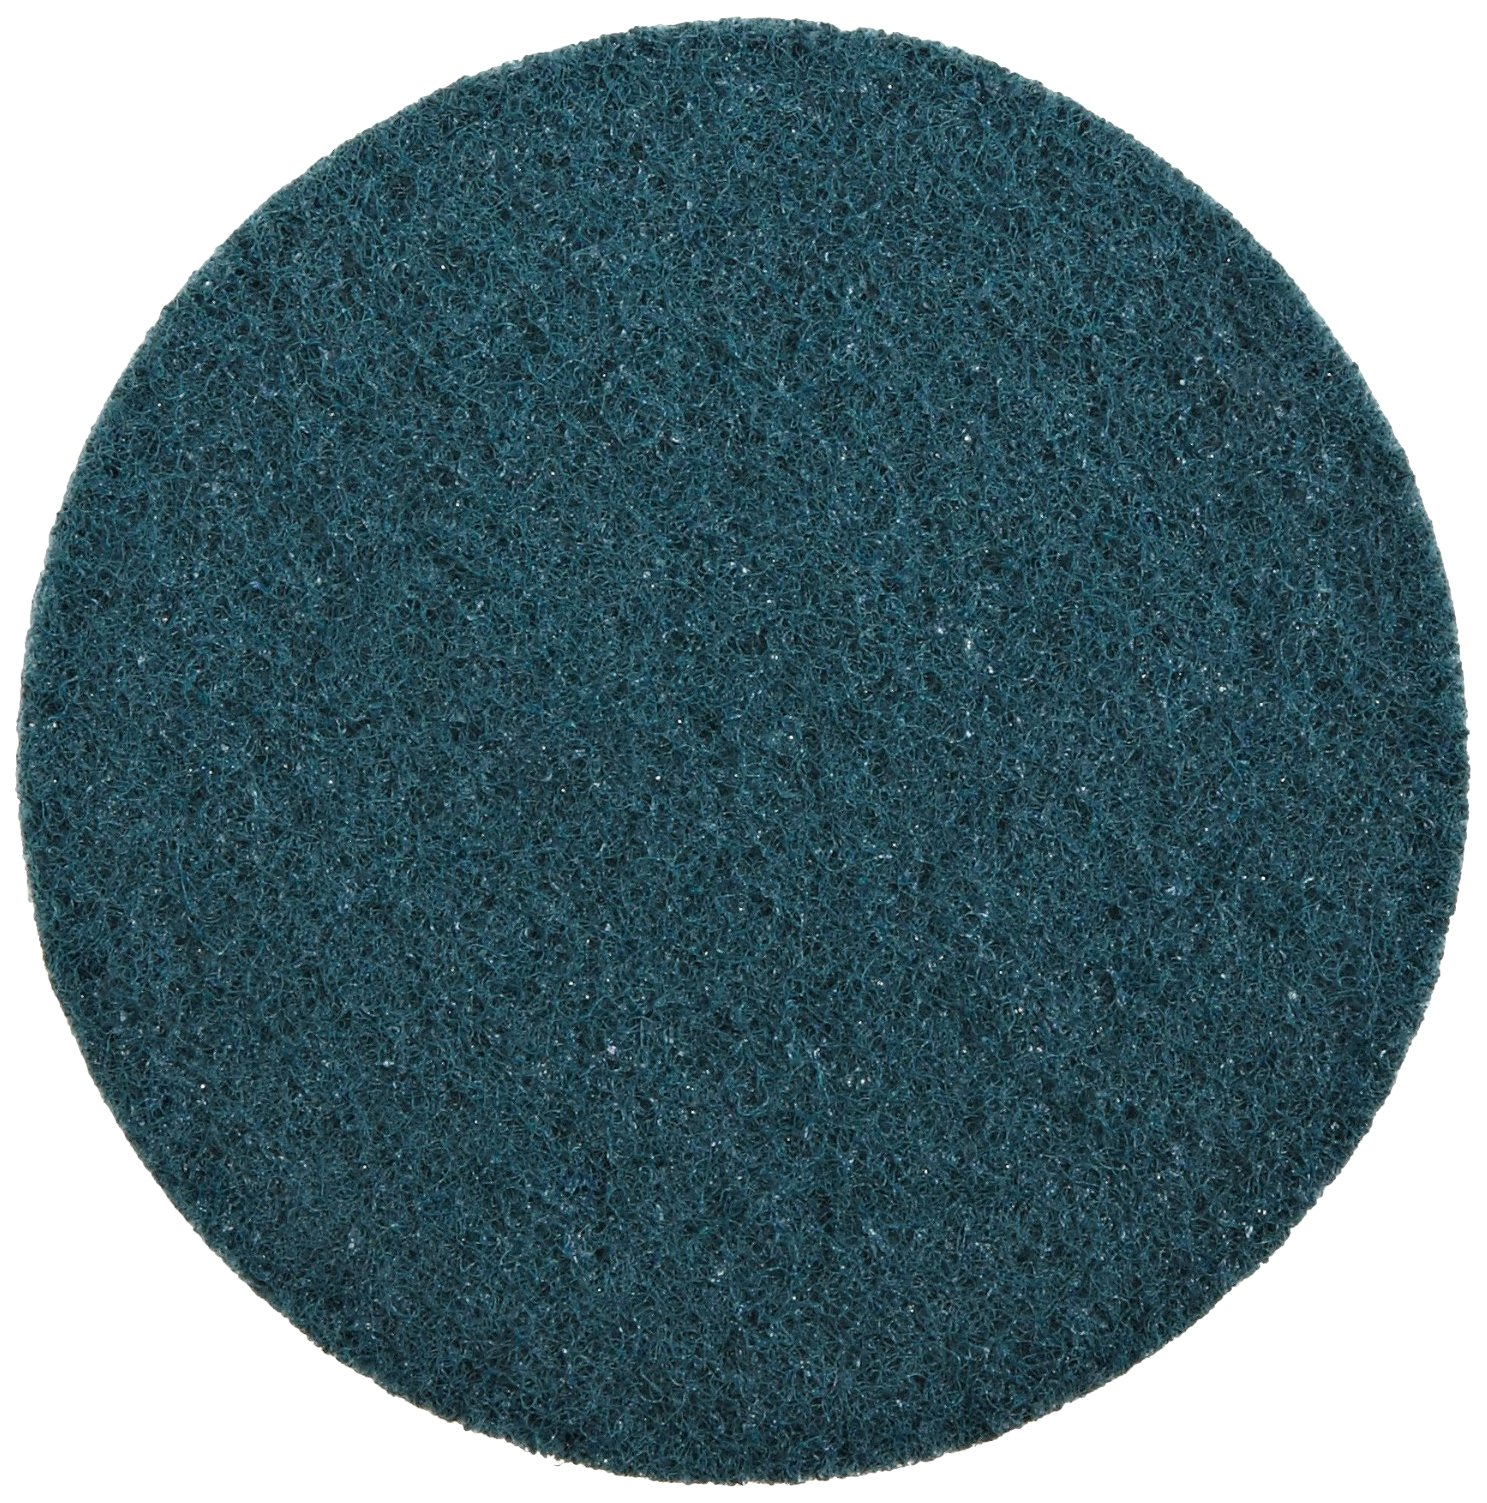 Scotch-Brite(TM) Surface Conditioning Disc, Hook and Loop Attachment, Aluminum Oxide, 7 Diameter, Very Fine Grit (Pack of 25)